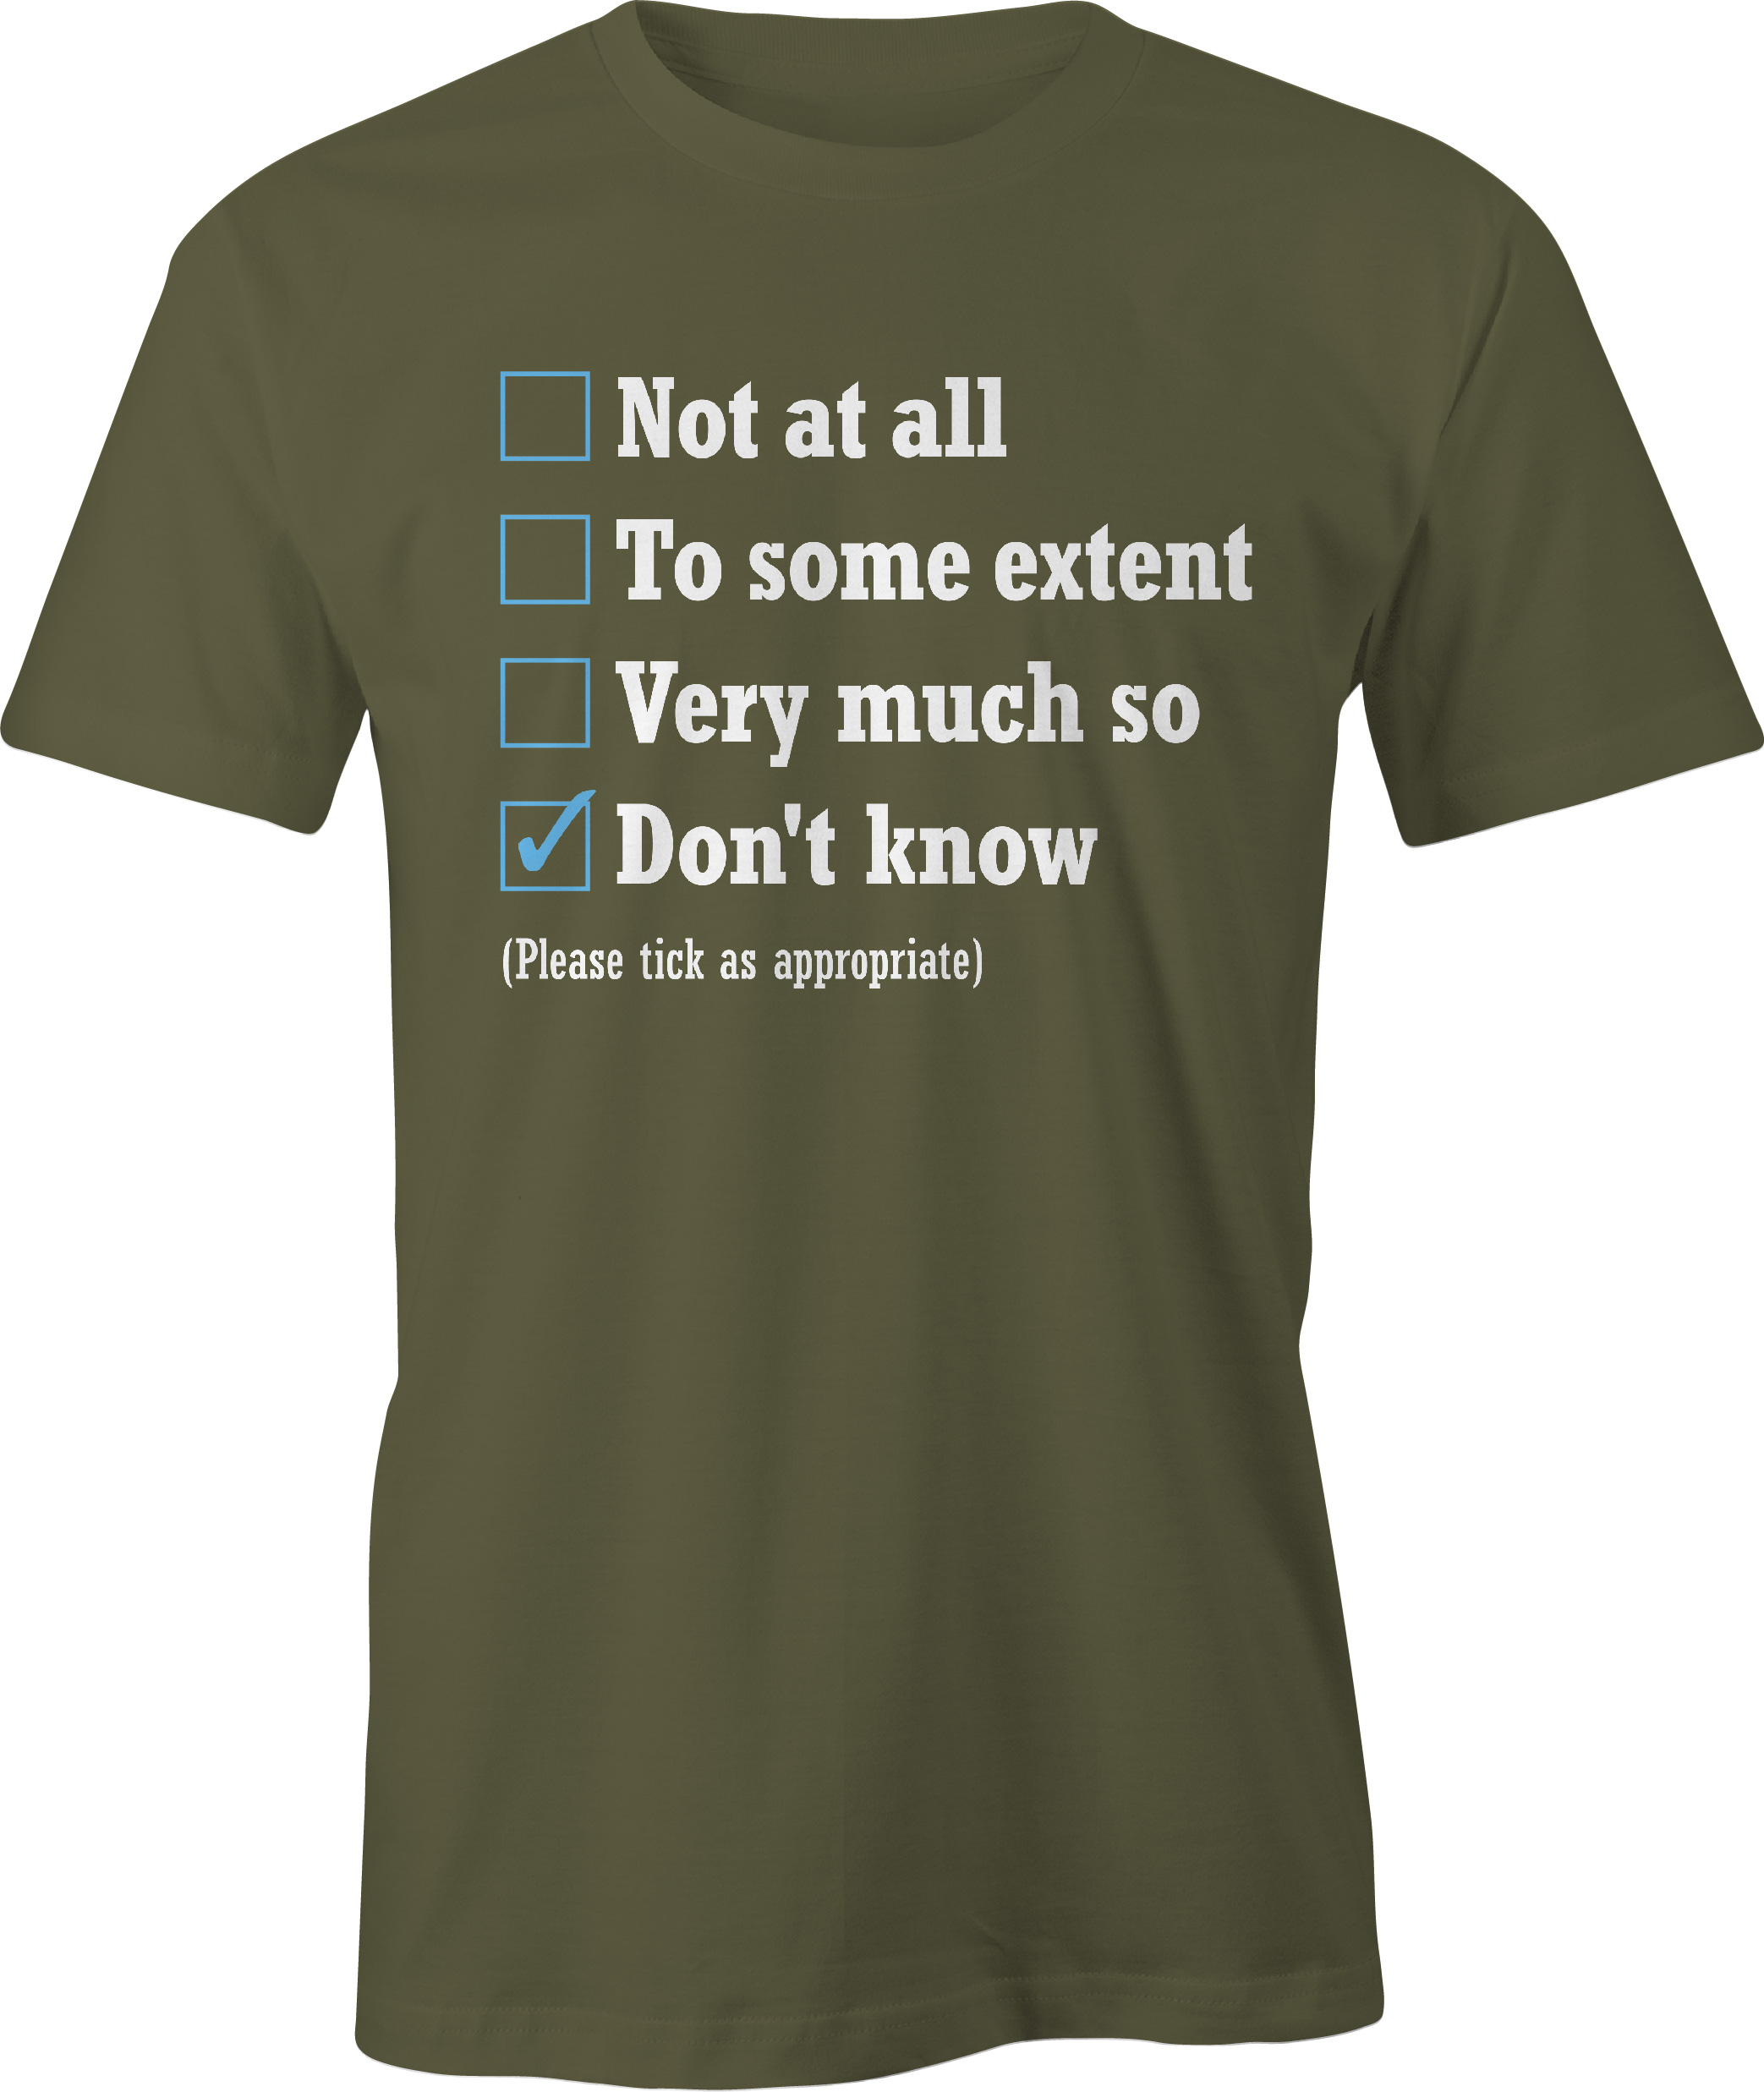 The Office appraisal t shirt in military green